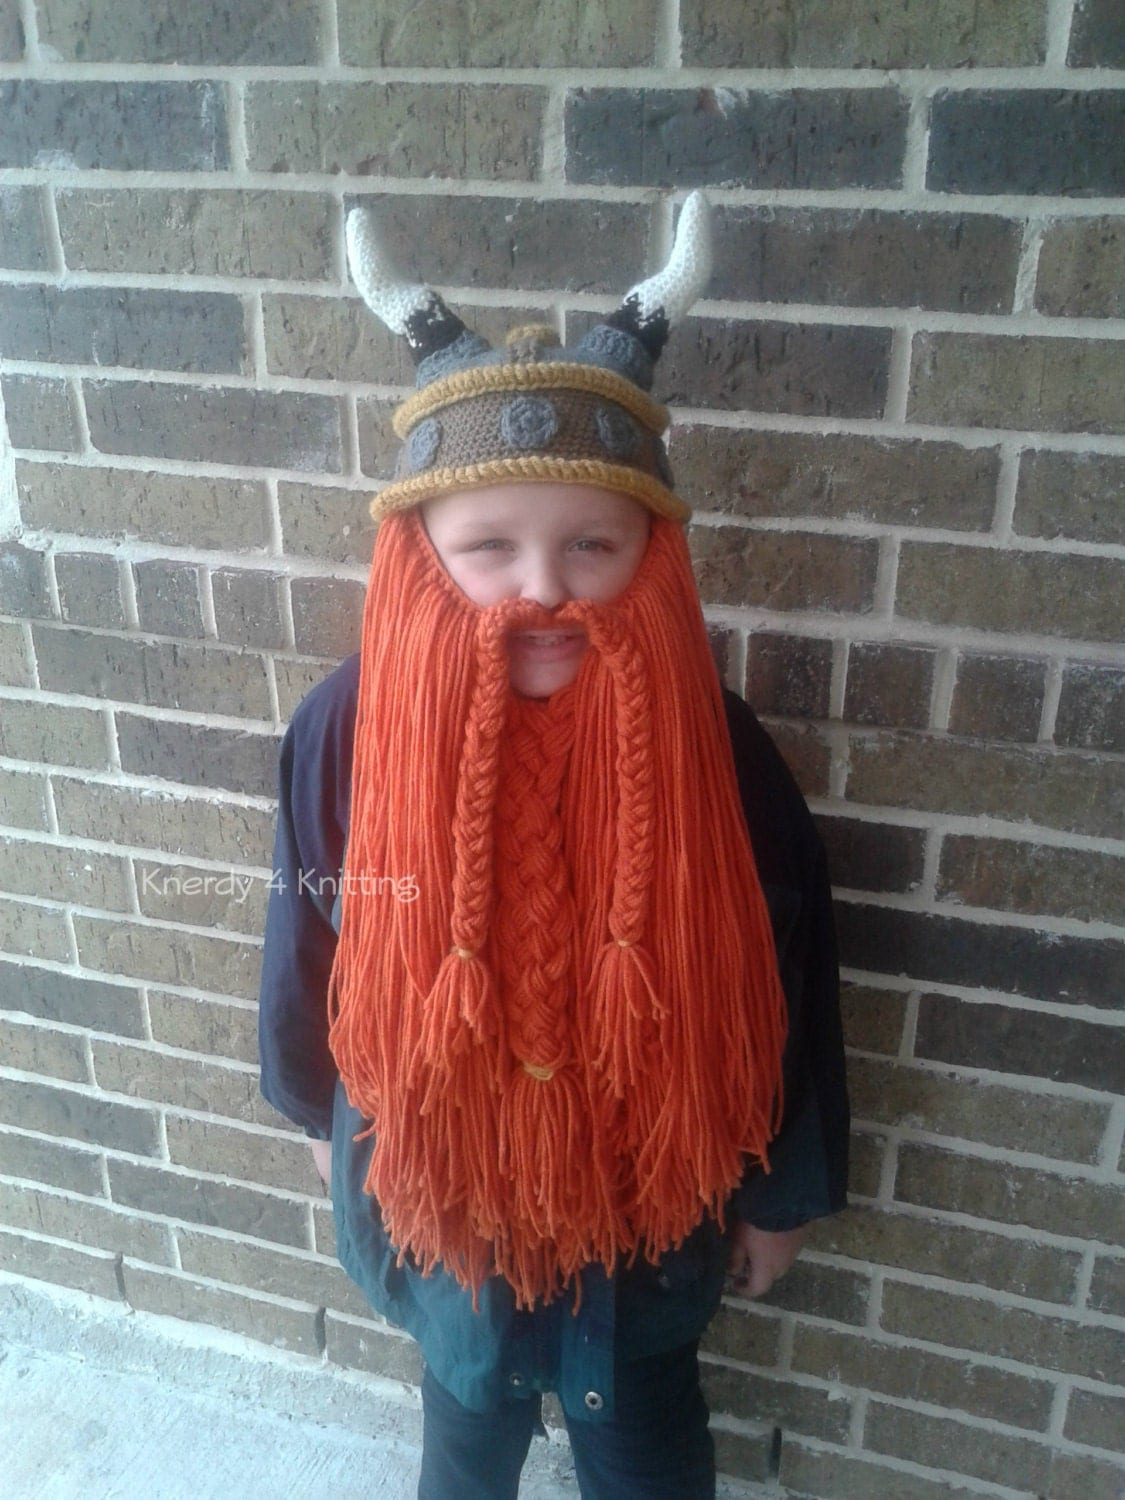 Crochet Viking Hat With Beard : Crochet Viking Hat Bearded Viking Hat Ready to by Knerdy4Knitting